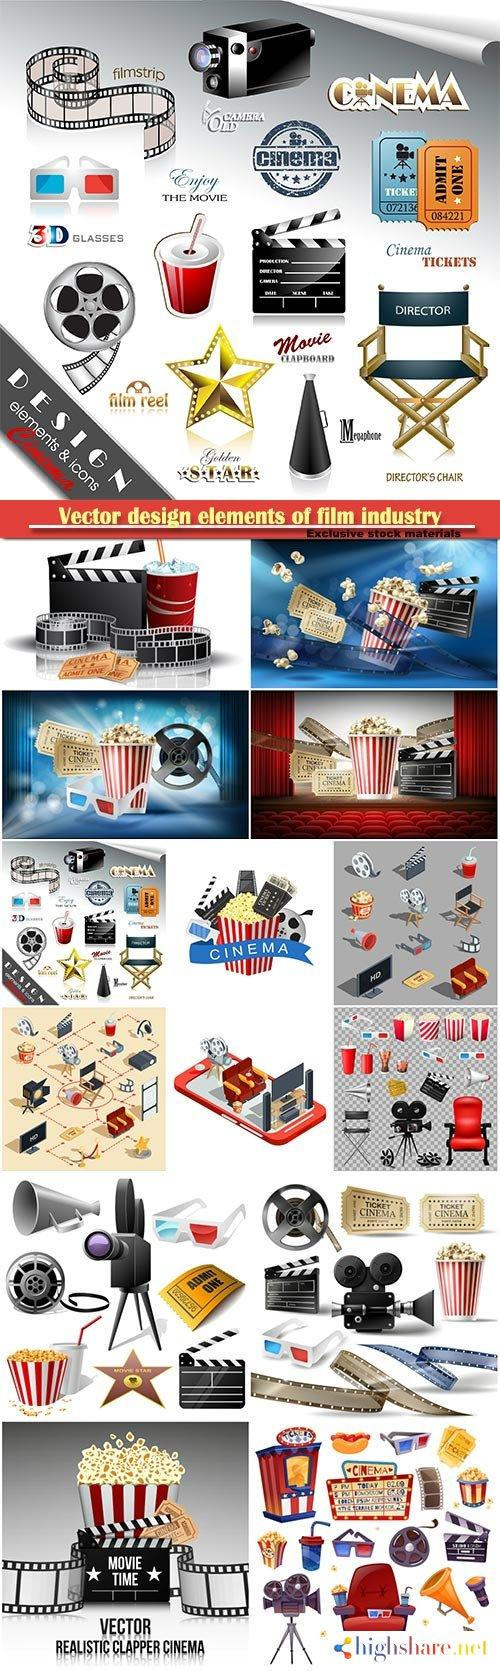 vector design elements of film industry popcorn reel tape glasses camcorder movie tickets and clapper board 5f40c8c98711d - Vector design elements of film industry, popcorn, reel, tape, glasses, camcorder, movie tickets and clapper board